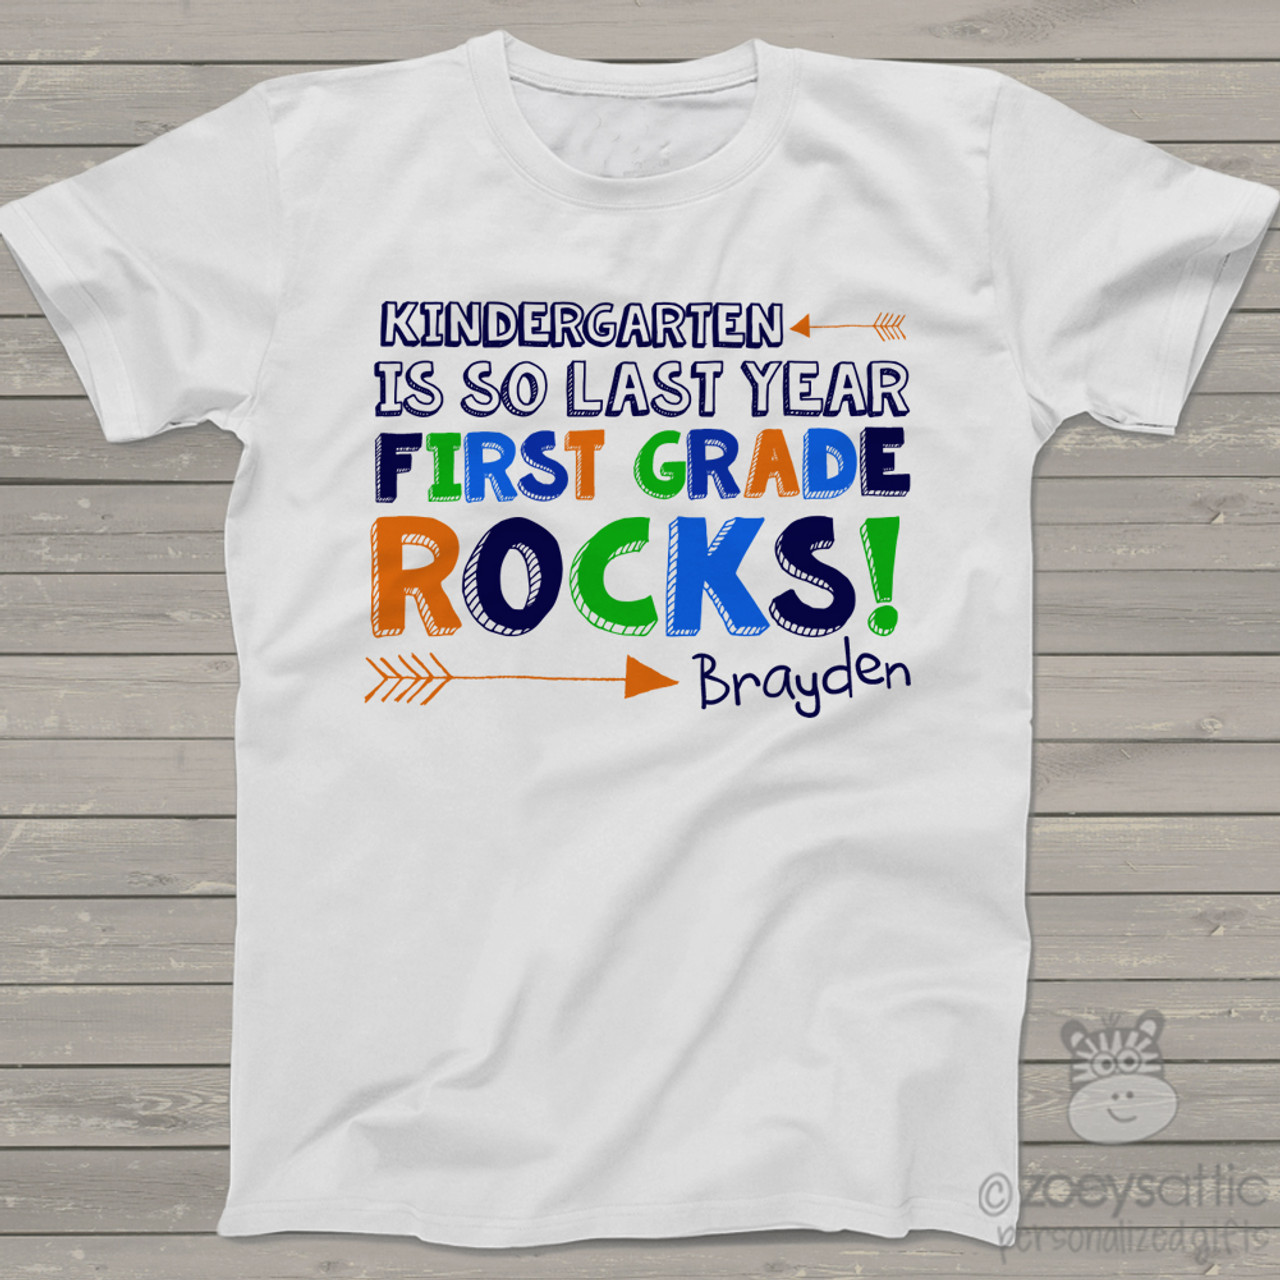 Kids School Shirt Funny Back To School First Grade Tshirt